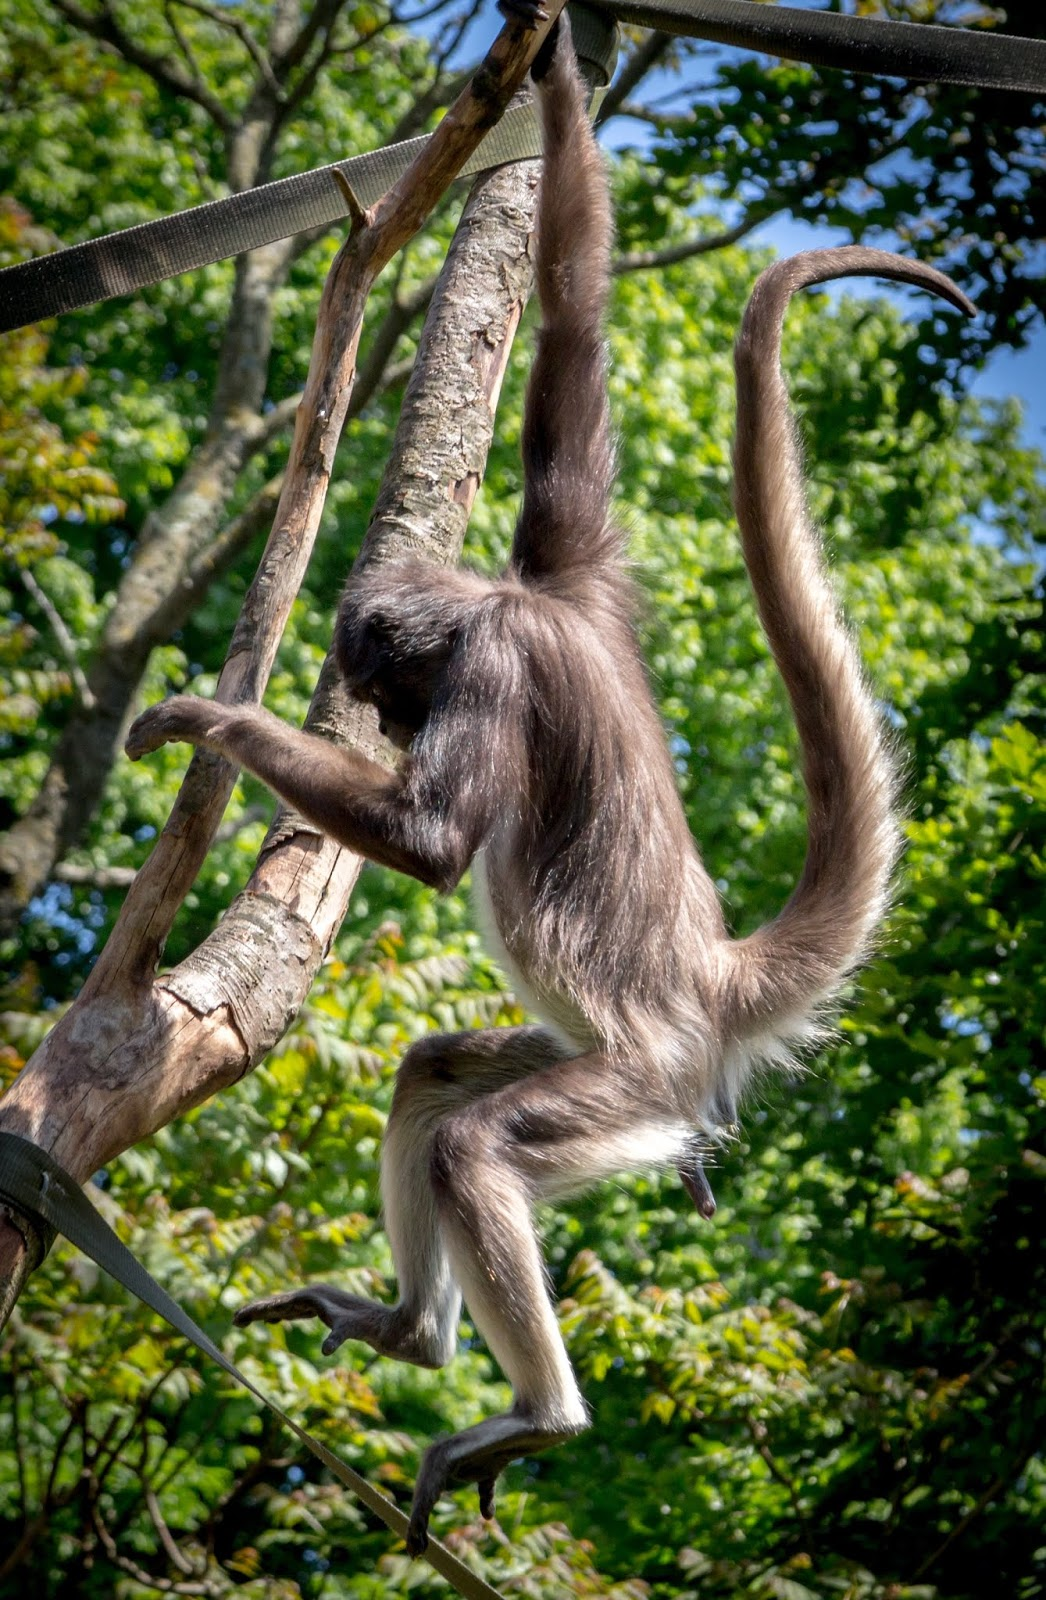 Picture of a spider monkey at a zoo.